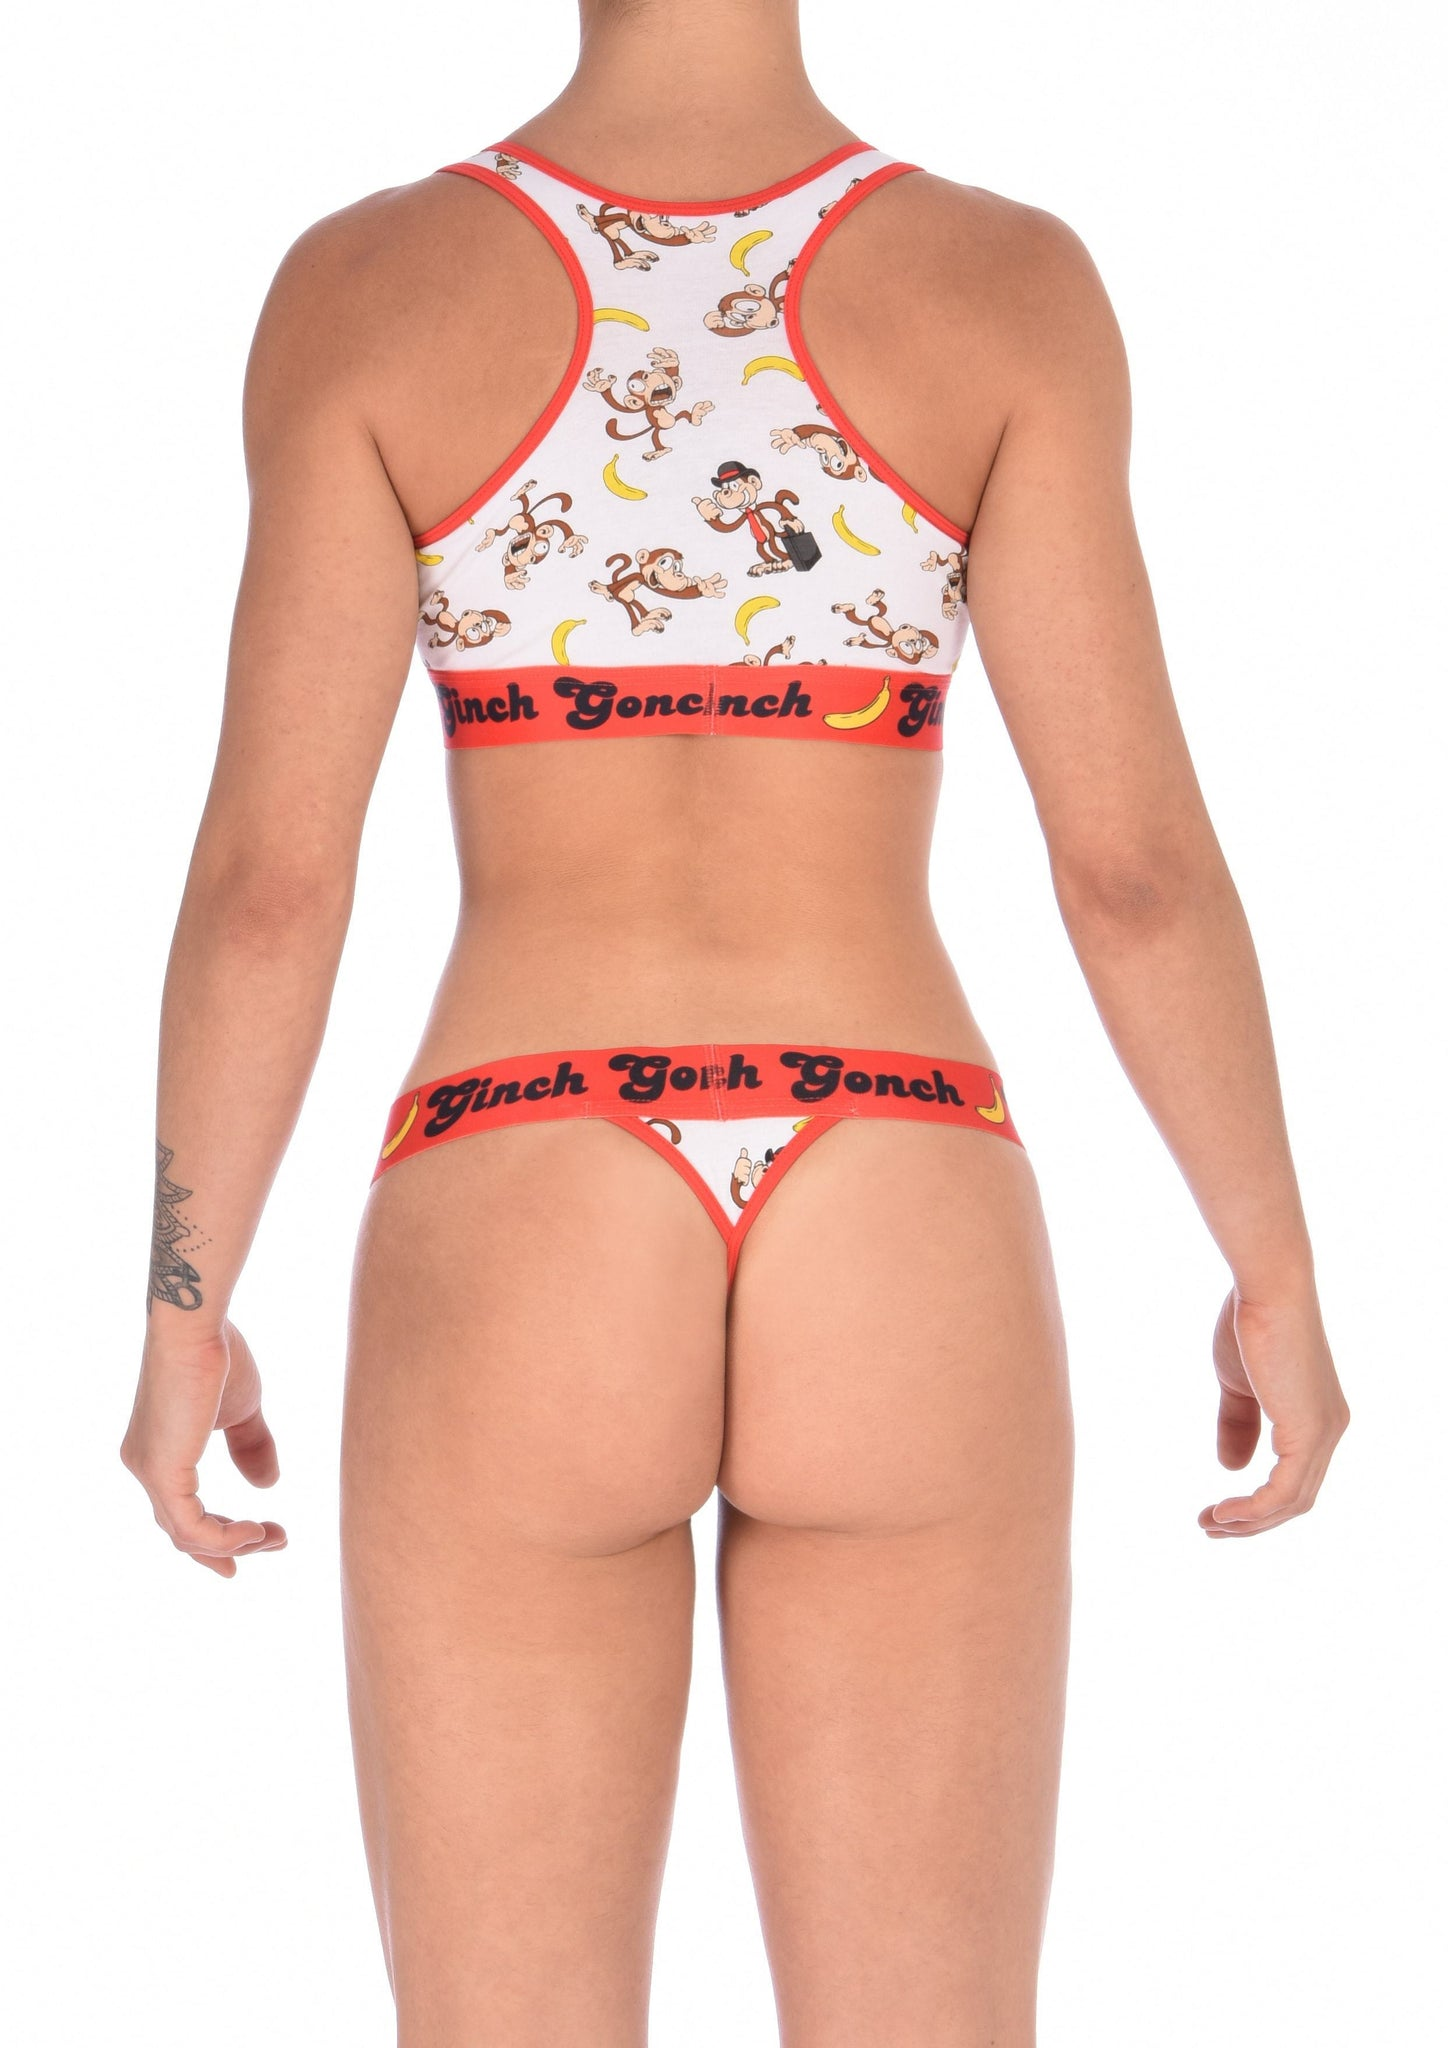 GG Ginch Gonch Gone Bananas thong women's underwear white fabric with monkeys and bananas red trim and red printed waistband back shown with matching sports bra